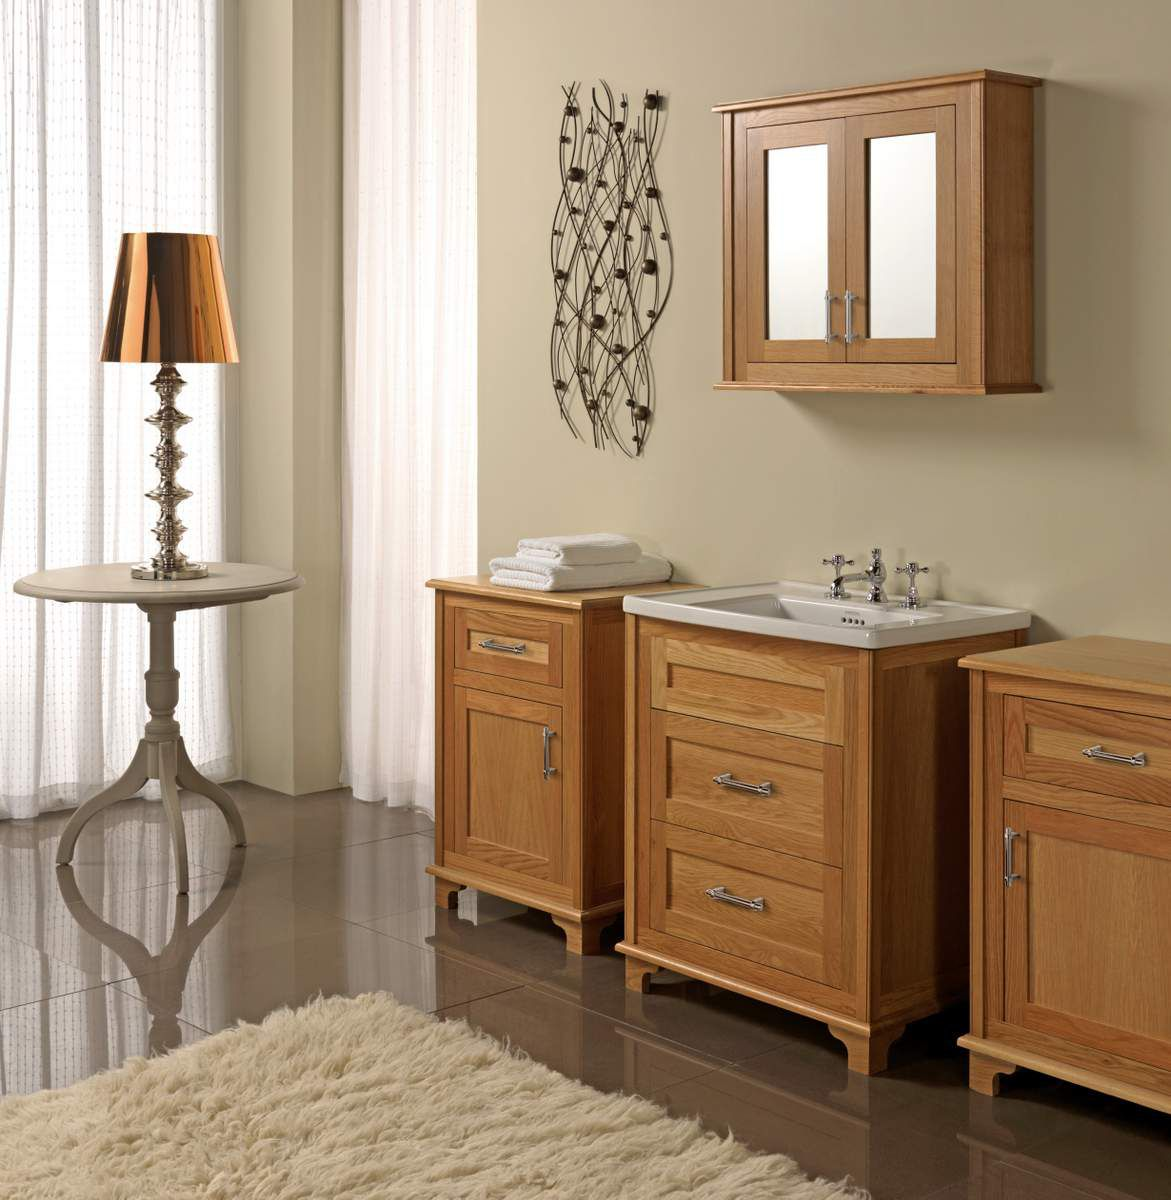 Imperial Radcliffe Thurlestone 2 Door Vanity Unit Uk Bathrooms